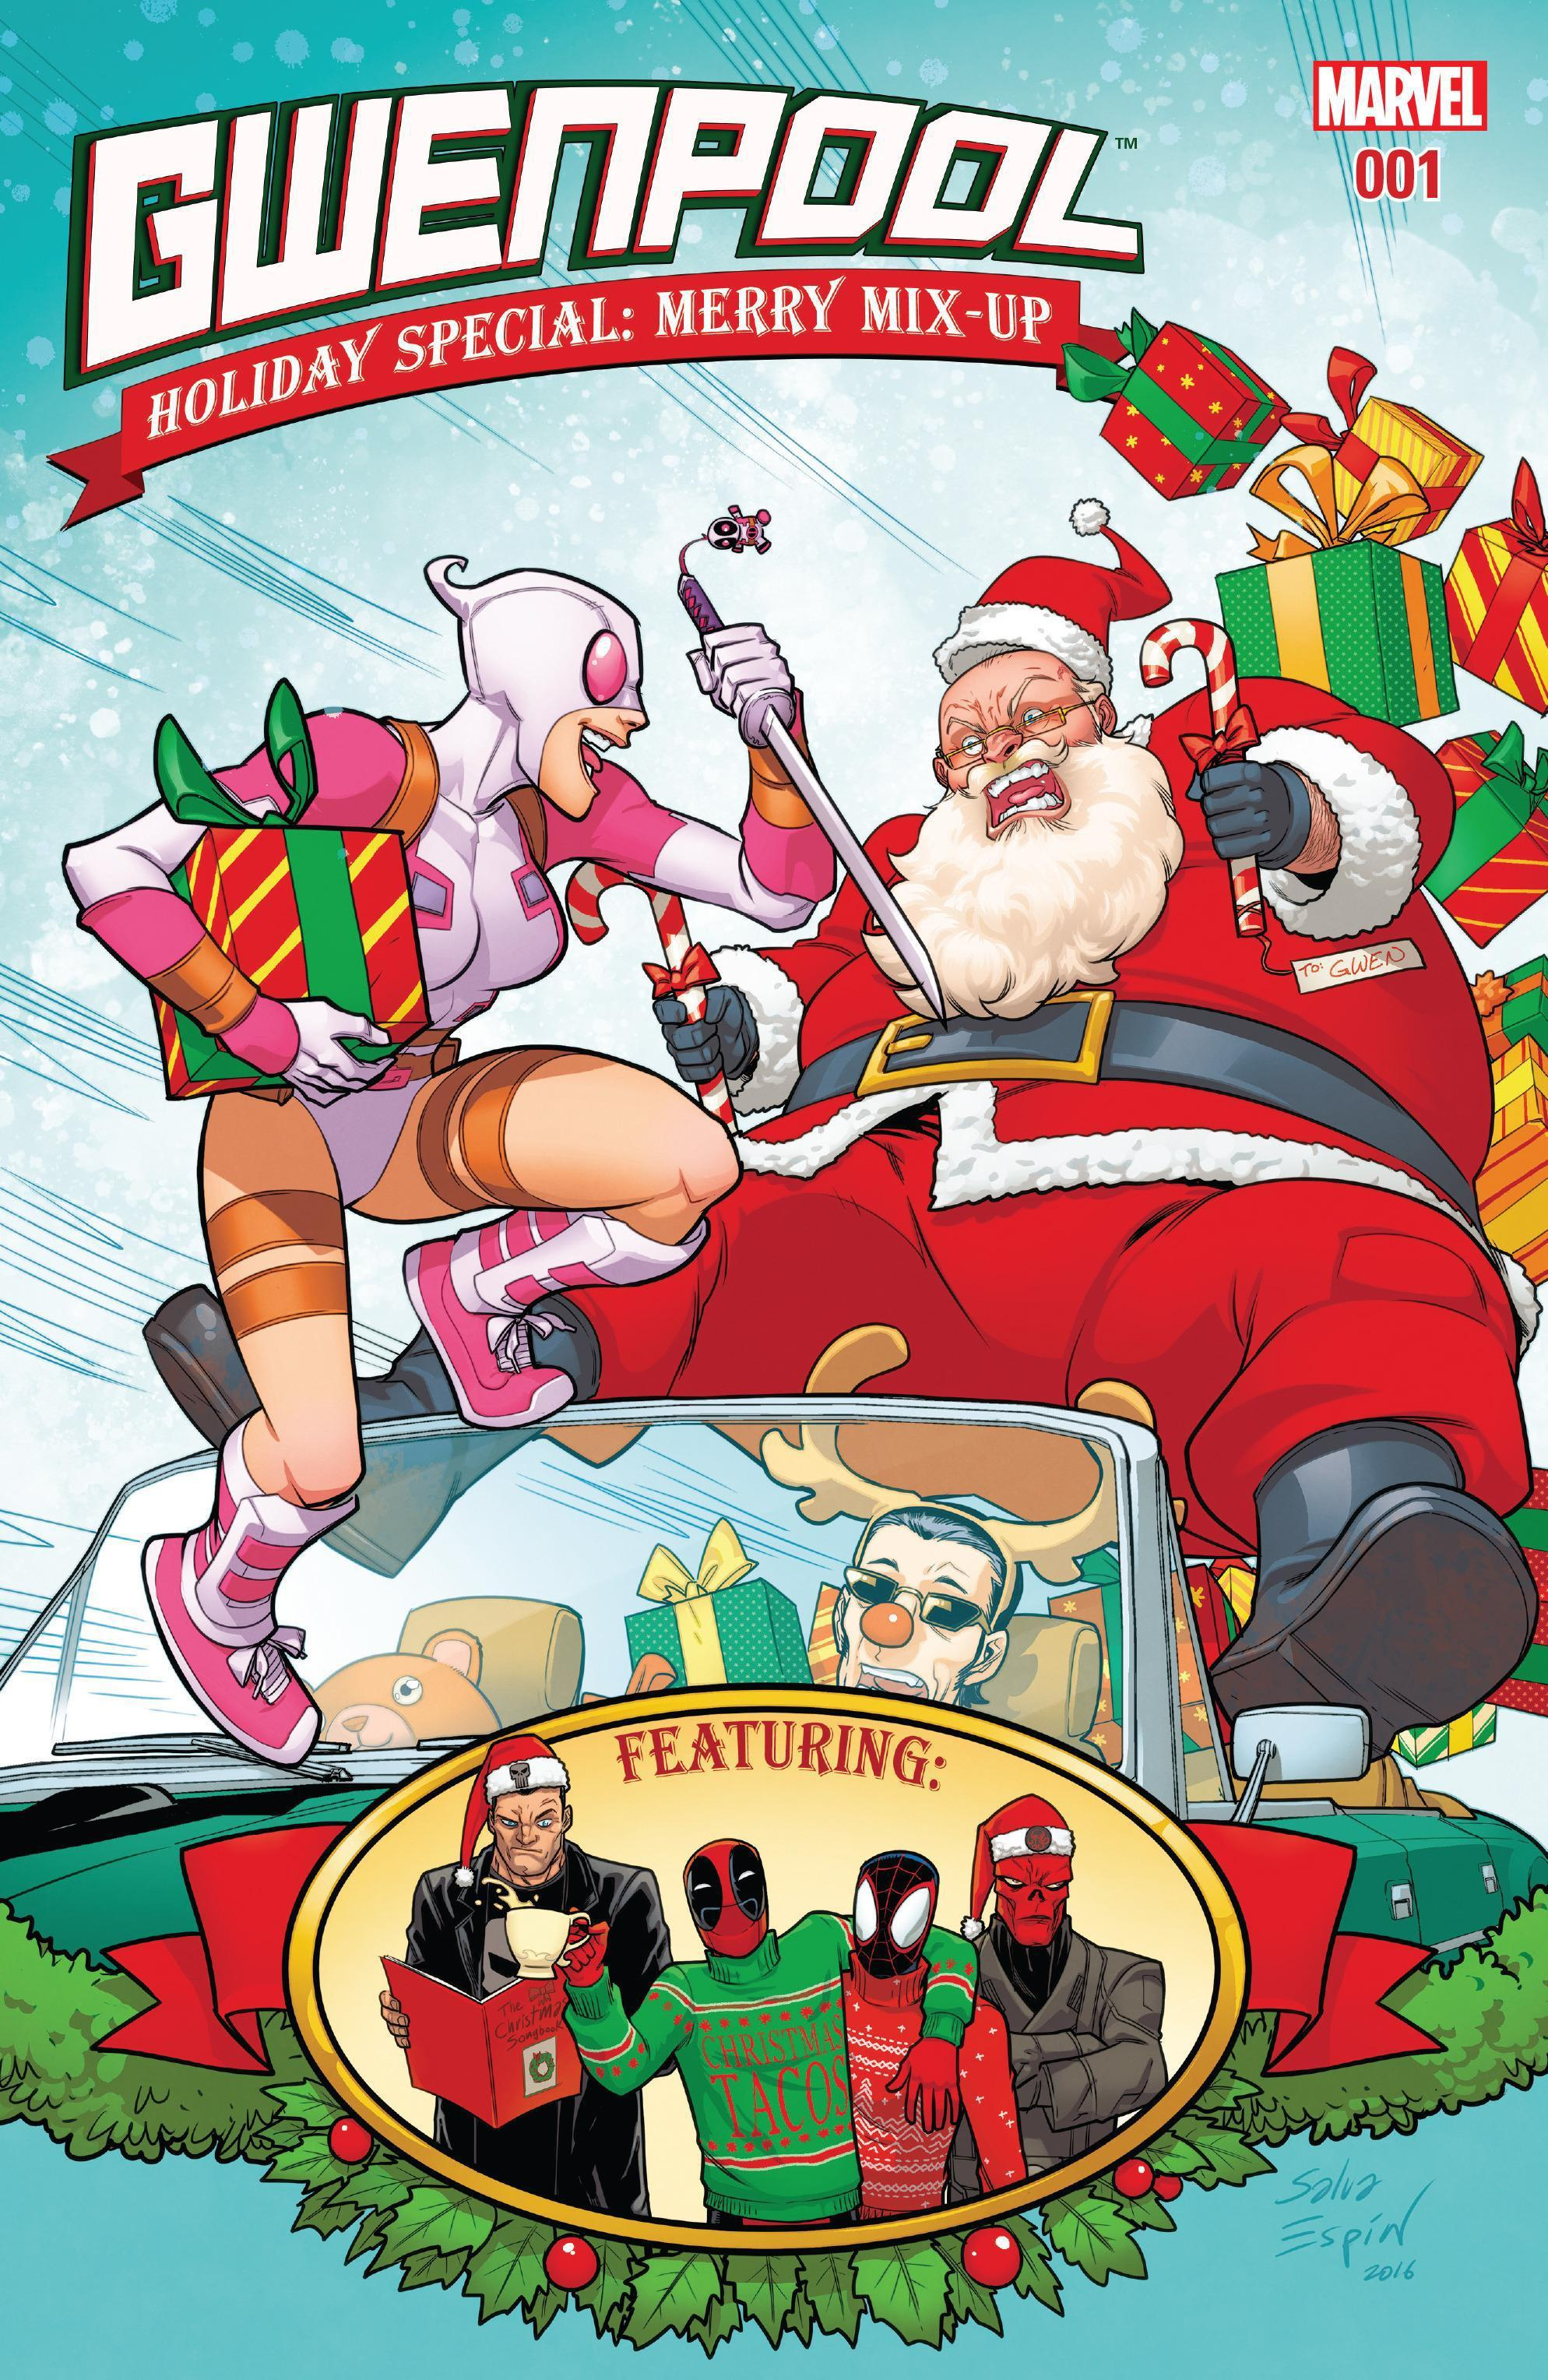 Gwenpool: Holiday Special: Merry Mix-Up Santa